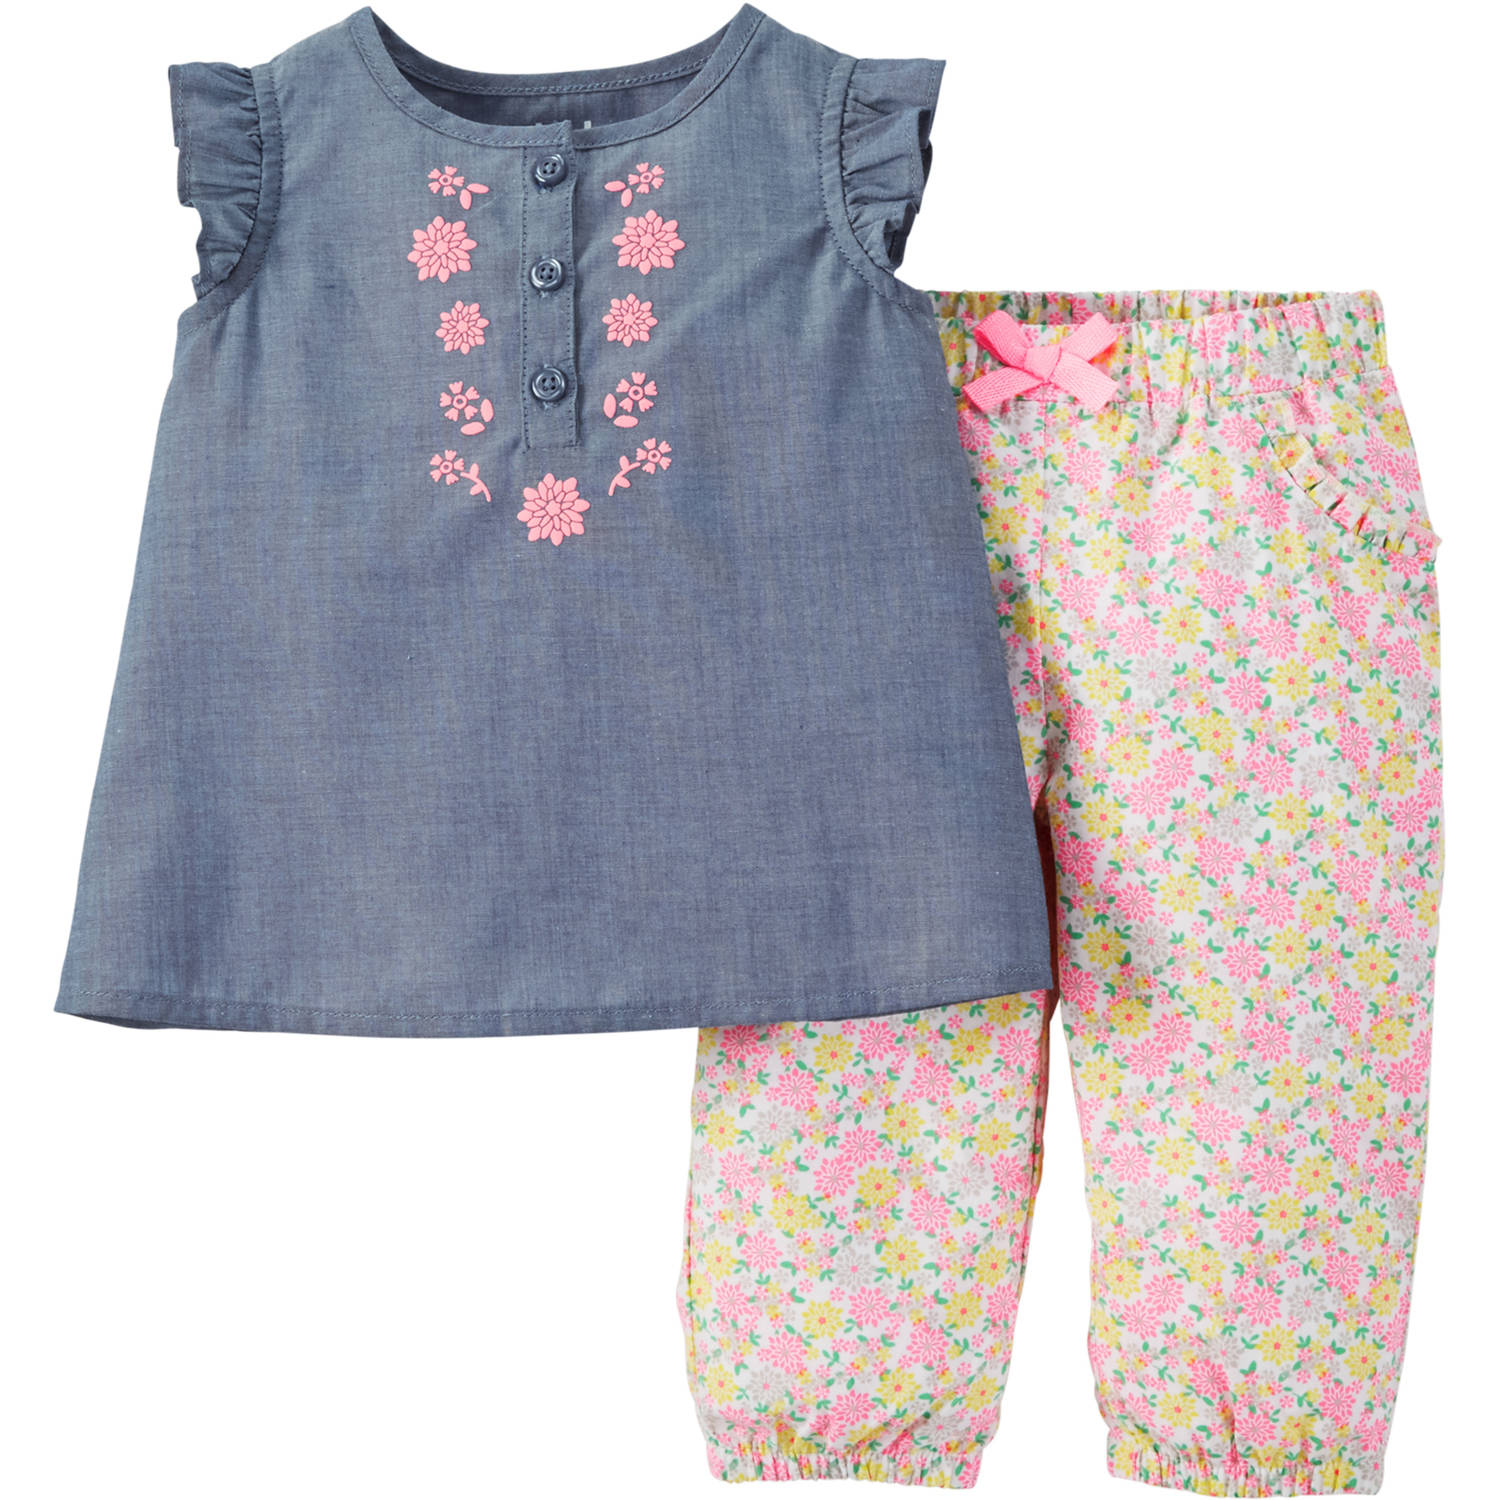 Child of Mine made by Carter's Newborn Baby Girls' Woven Top and Pant Outfit Set 2 Pieces